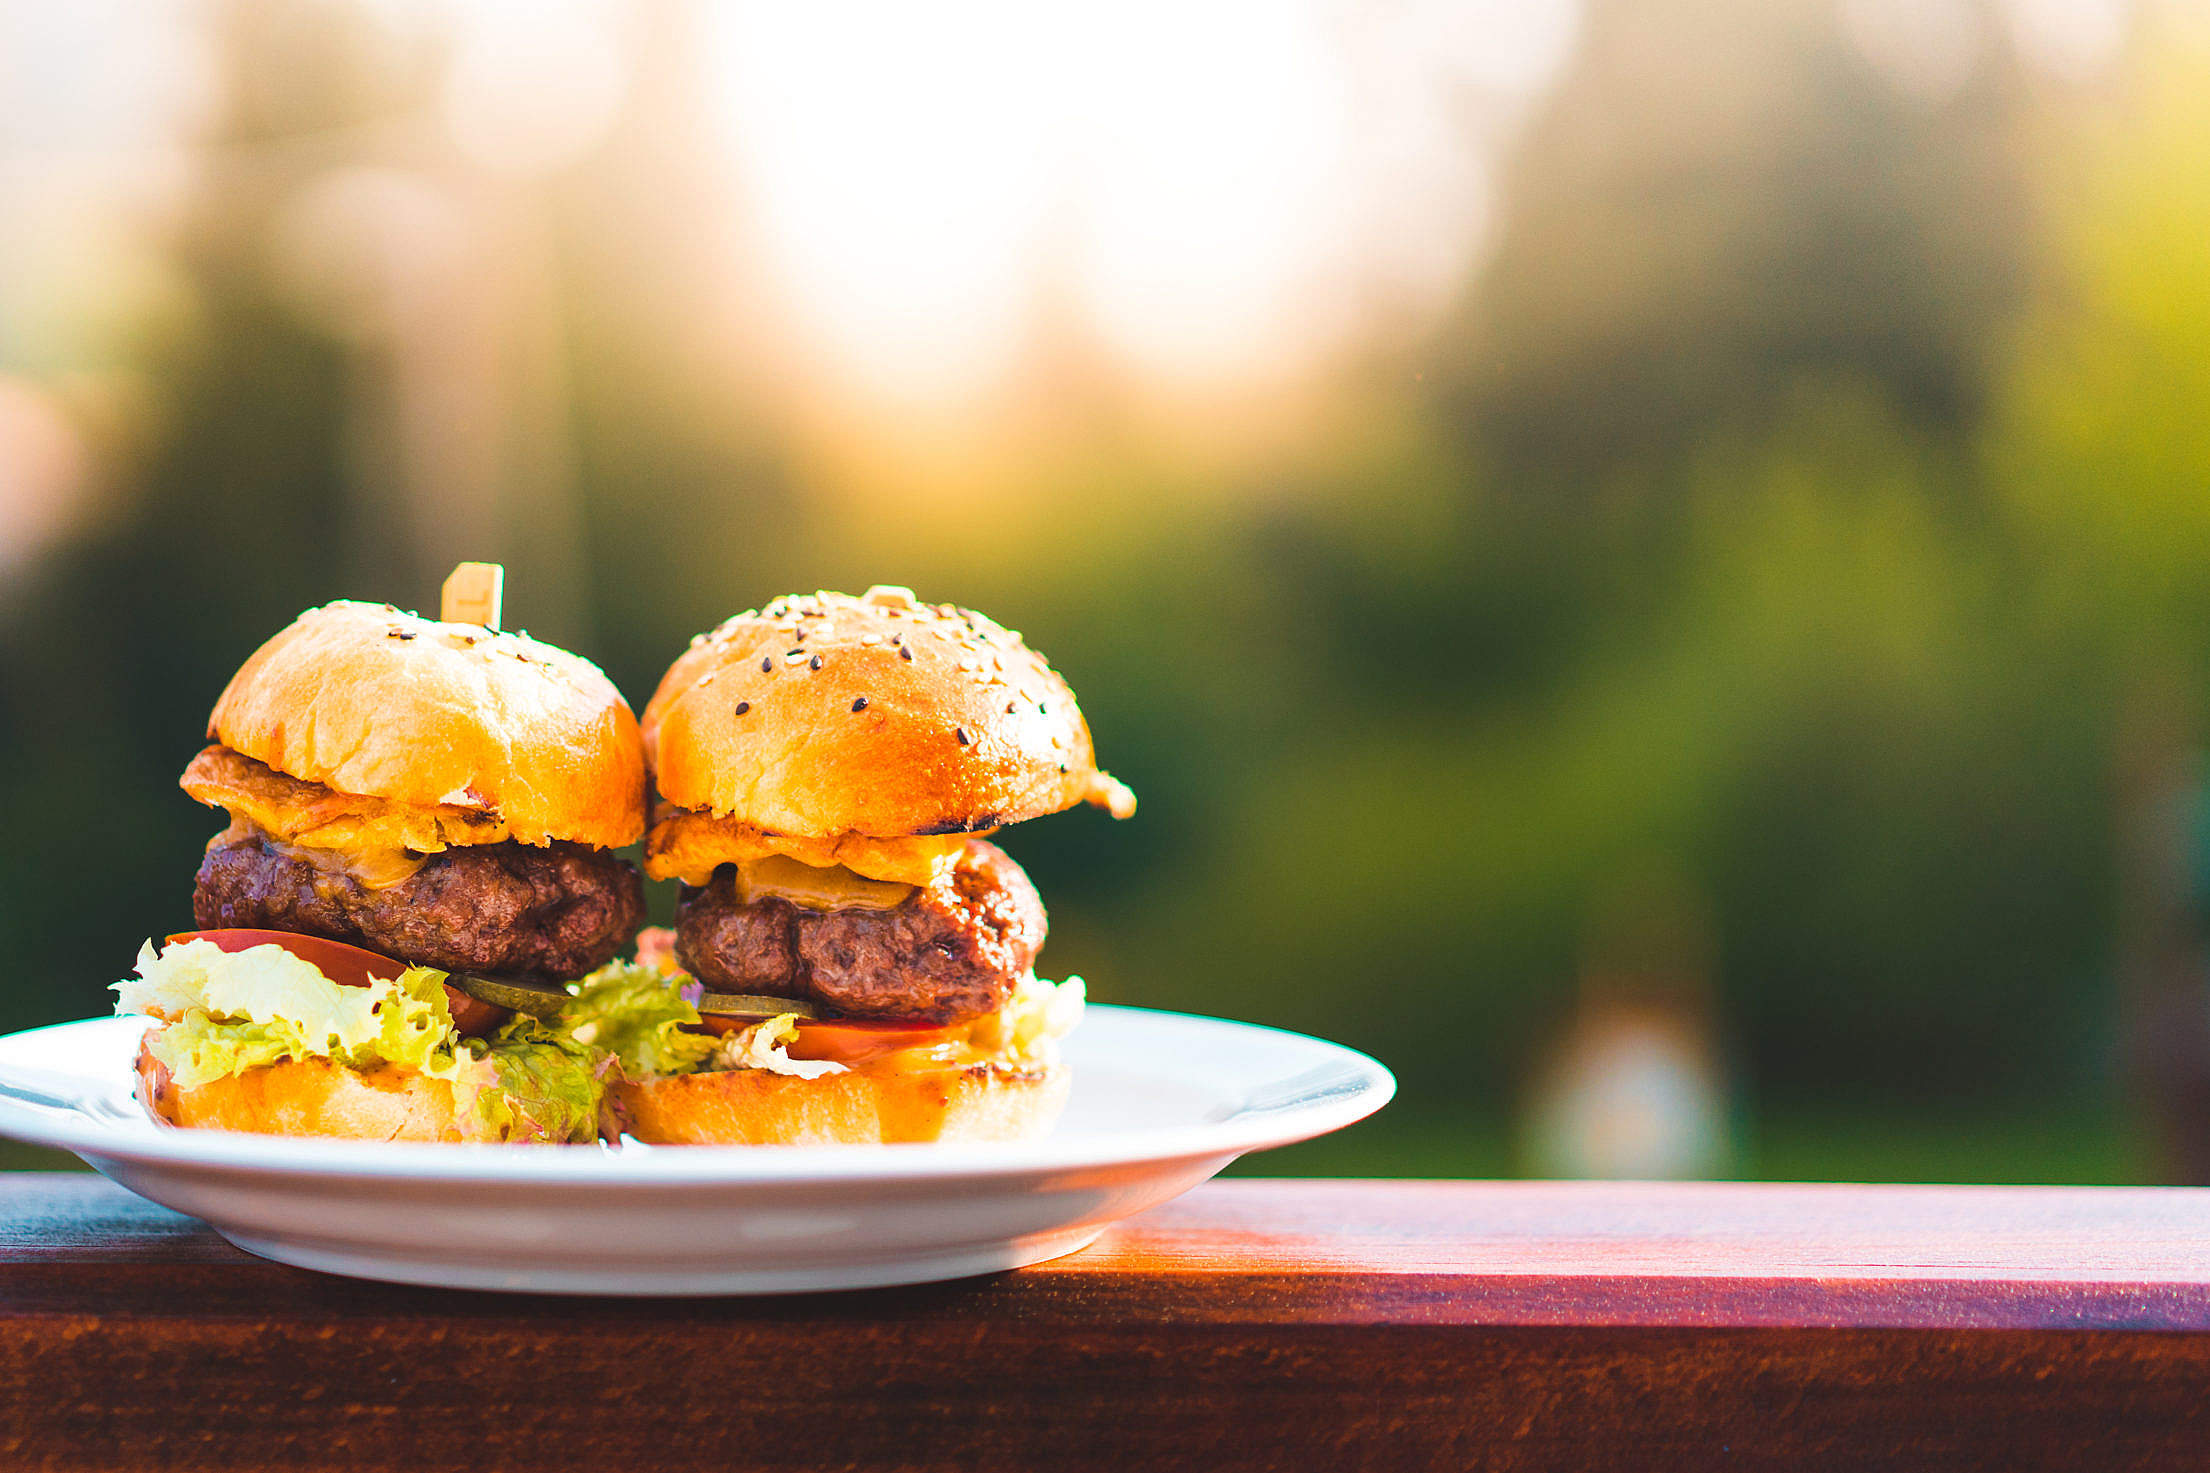 Perfect Mini Hamburgers Free Stock Photo